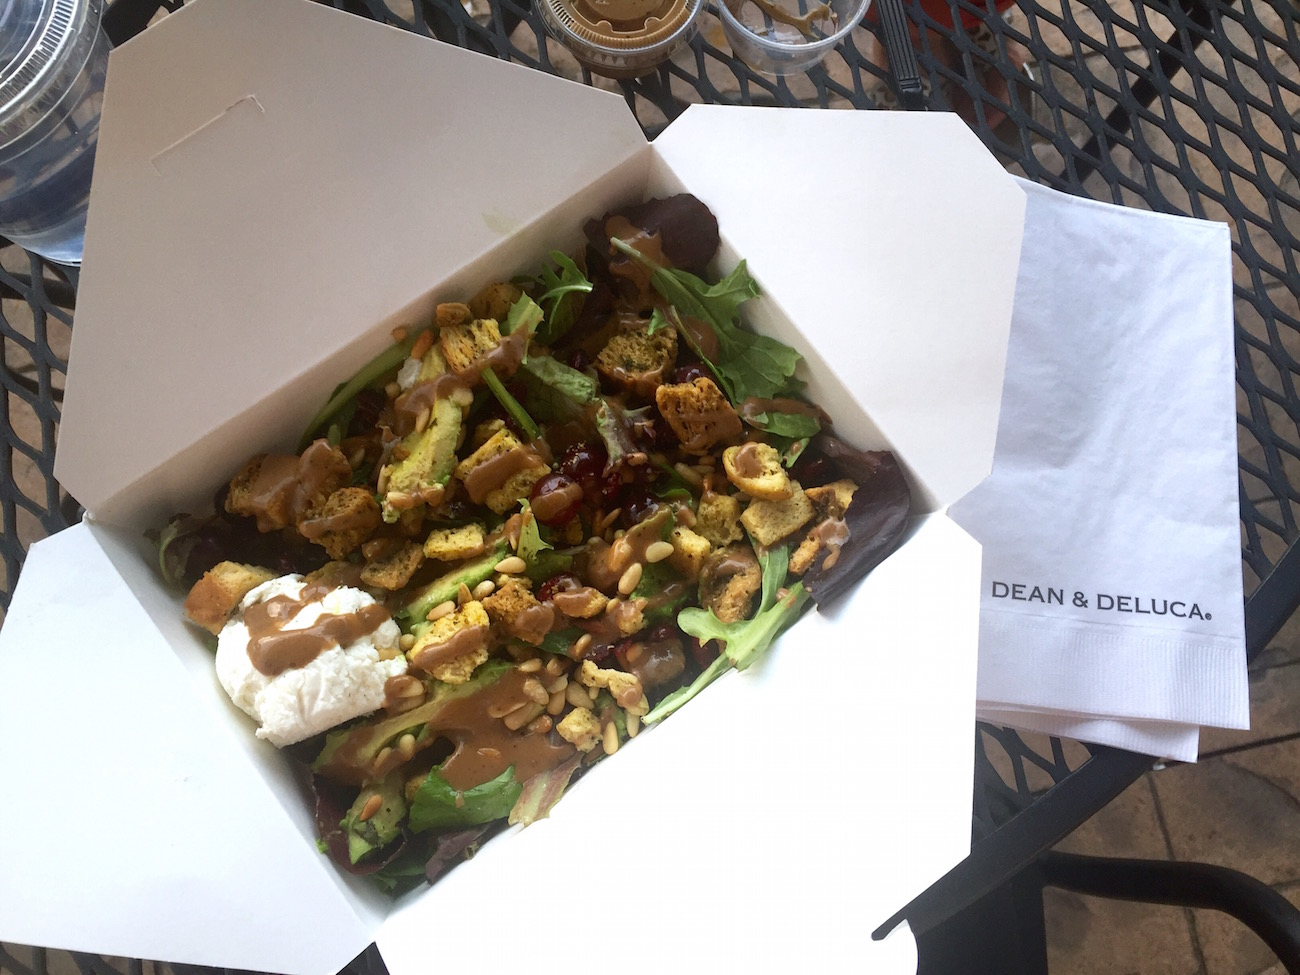 How to get a $5 salad at Dean & Deluca